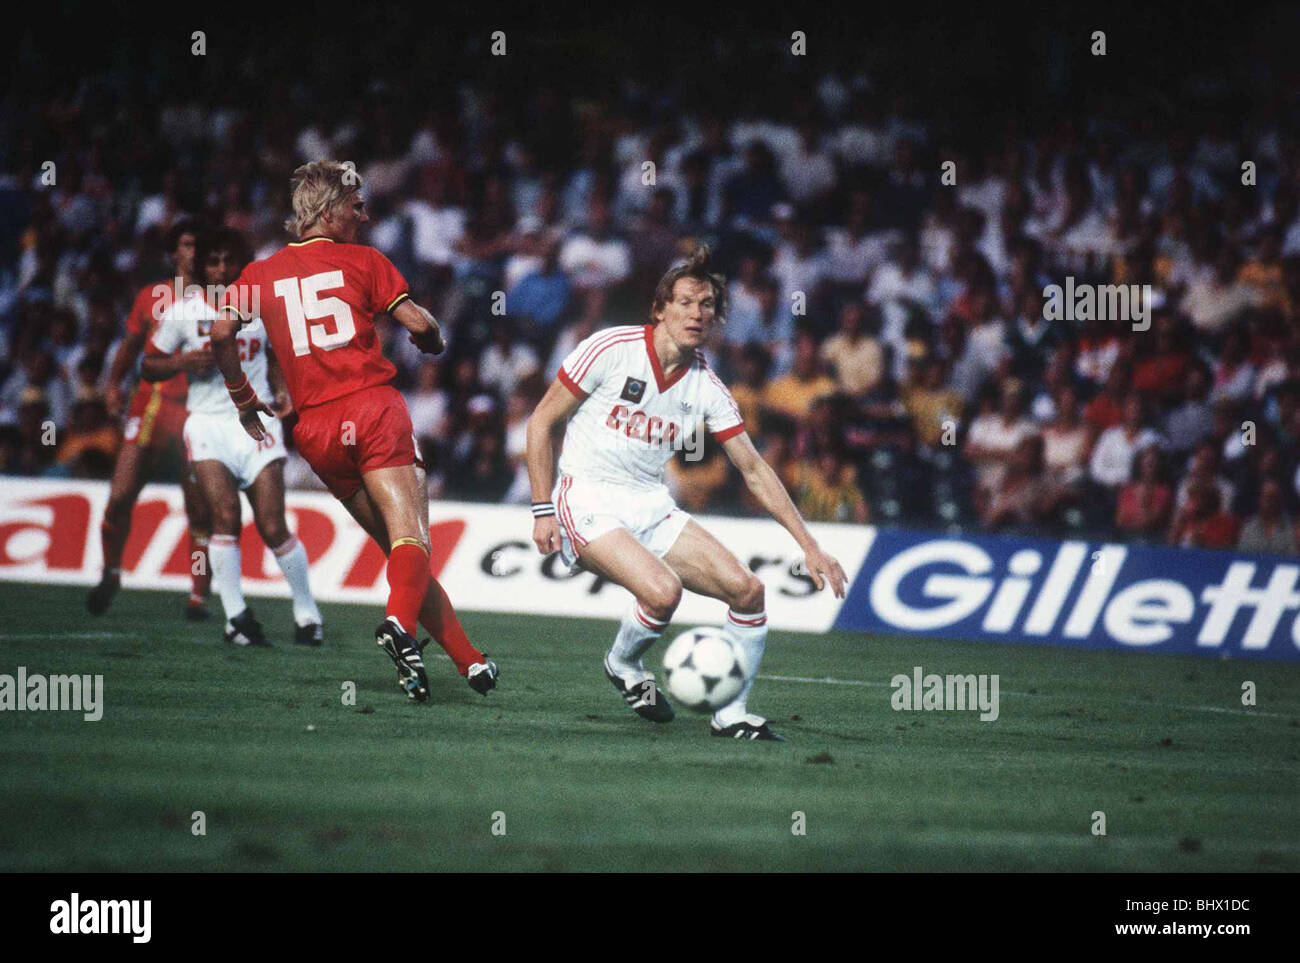 Belgium v Russia 1982 World cup match Oleg Blokhin out smarts Marice De Schrijver - Stock Image